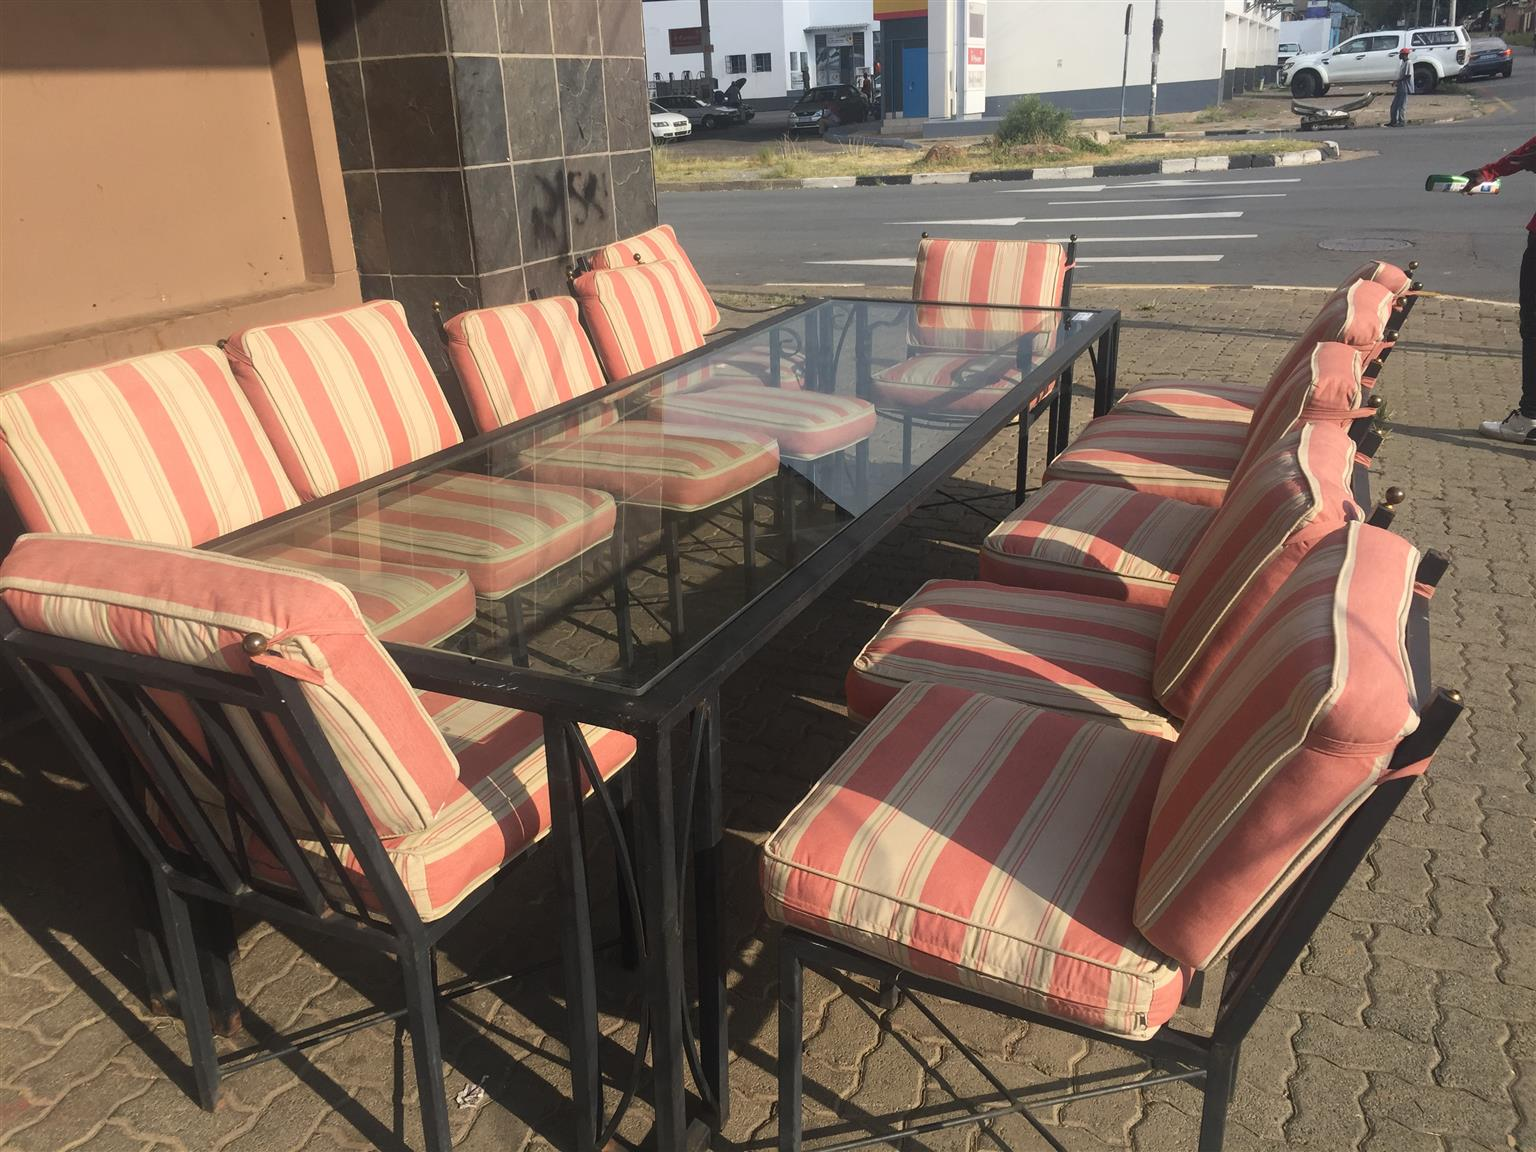 13 Piece Wrought Iron Patio Suite with Cushions